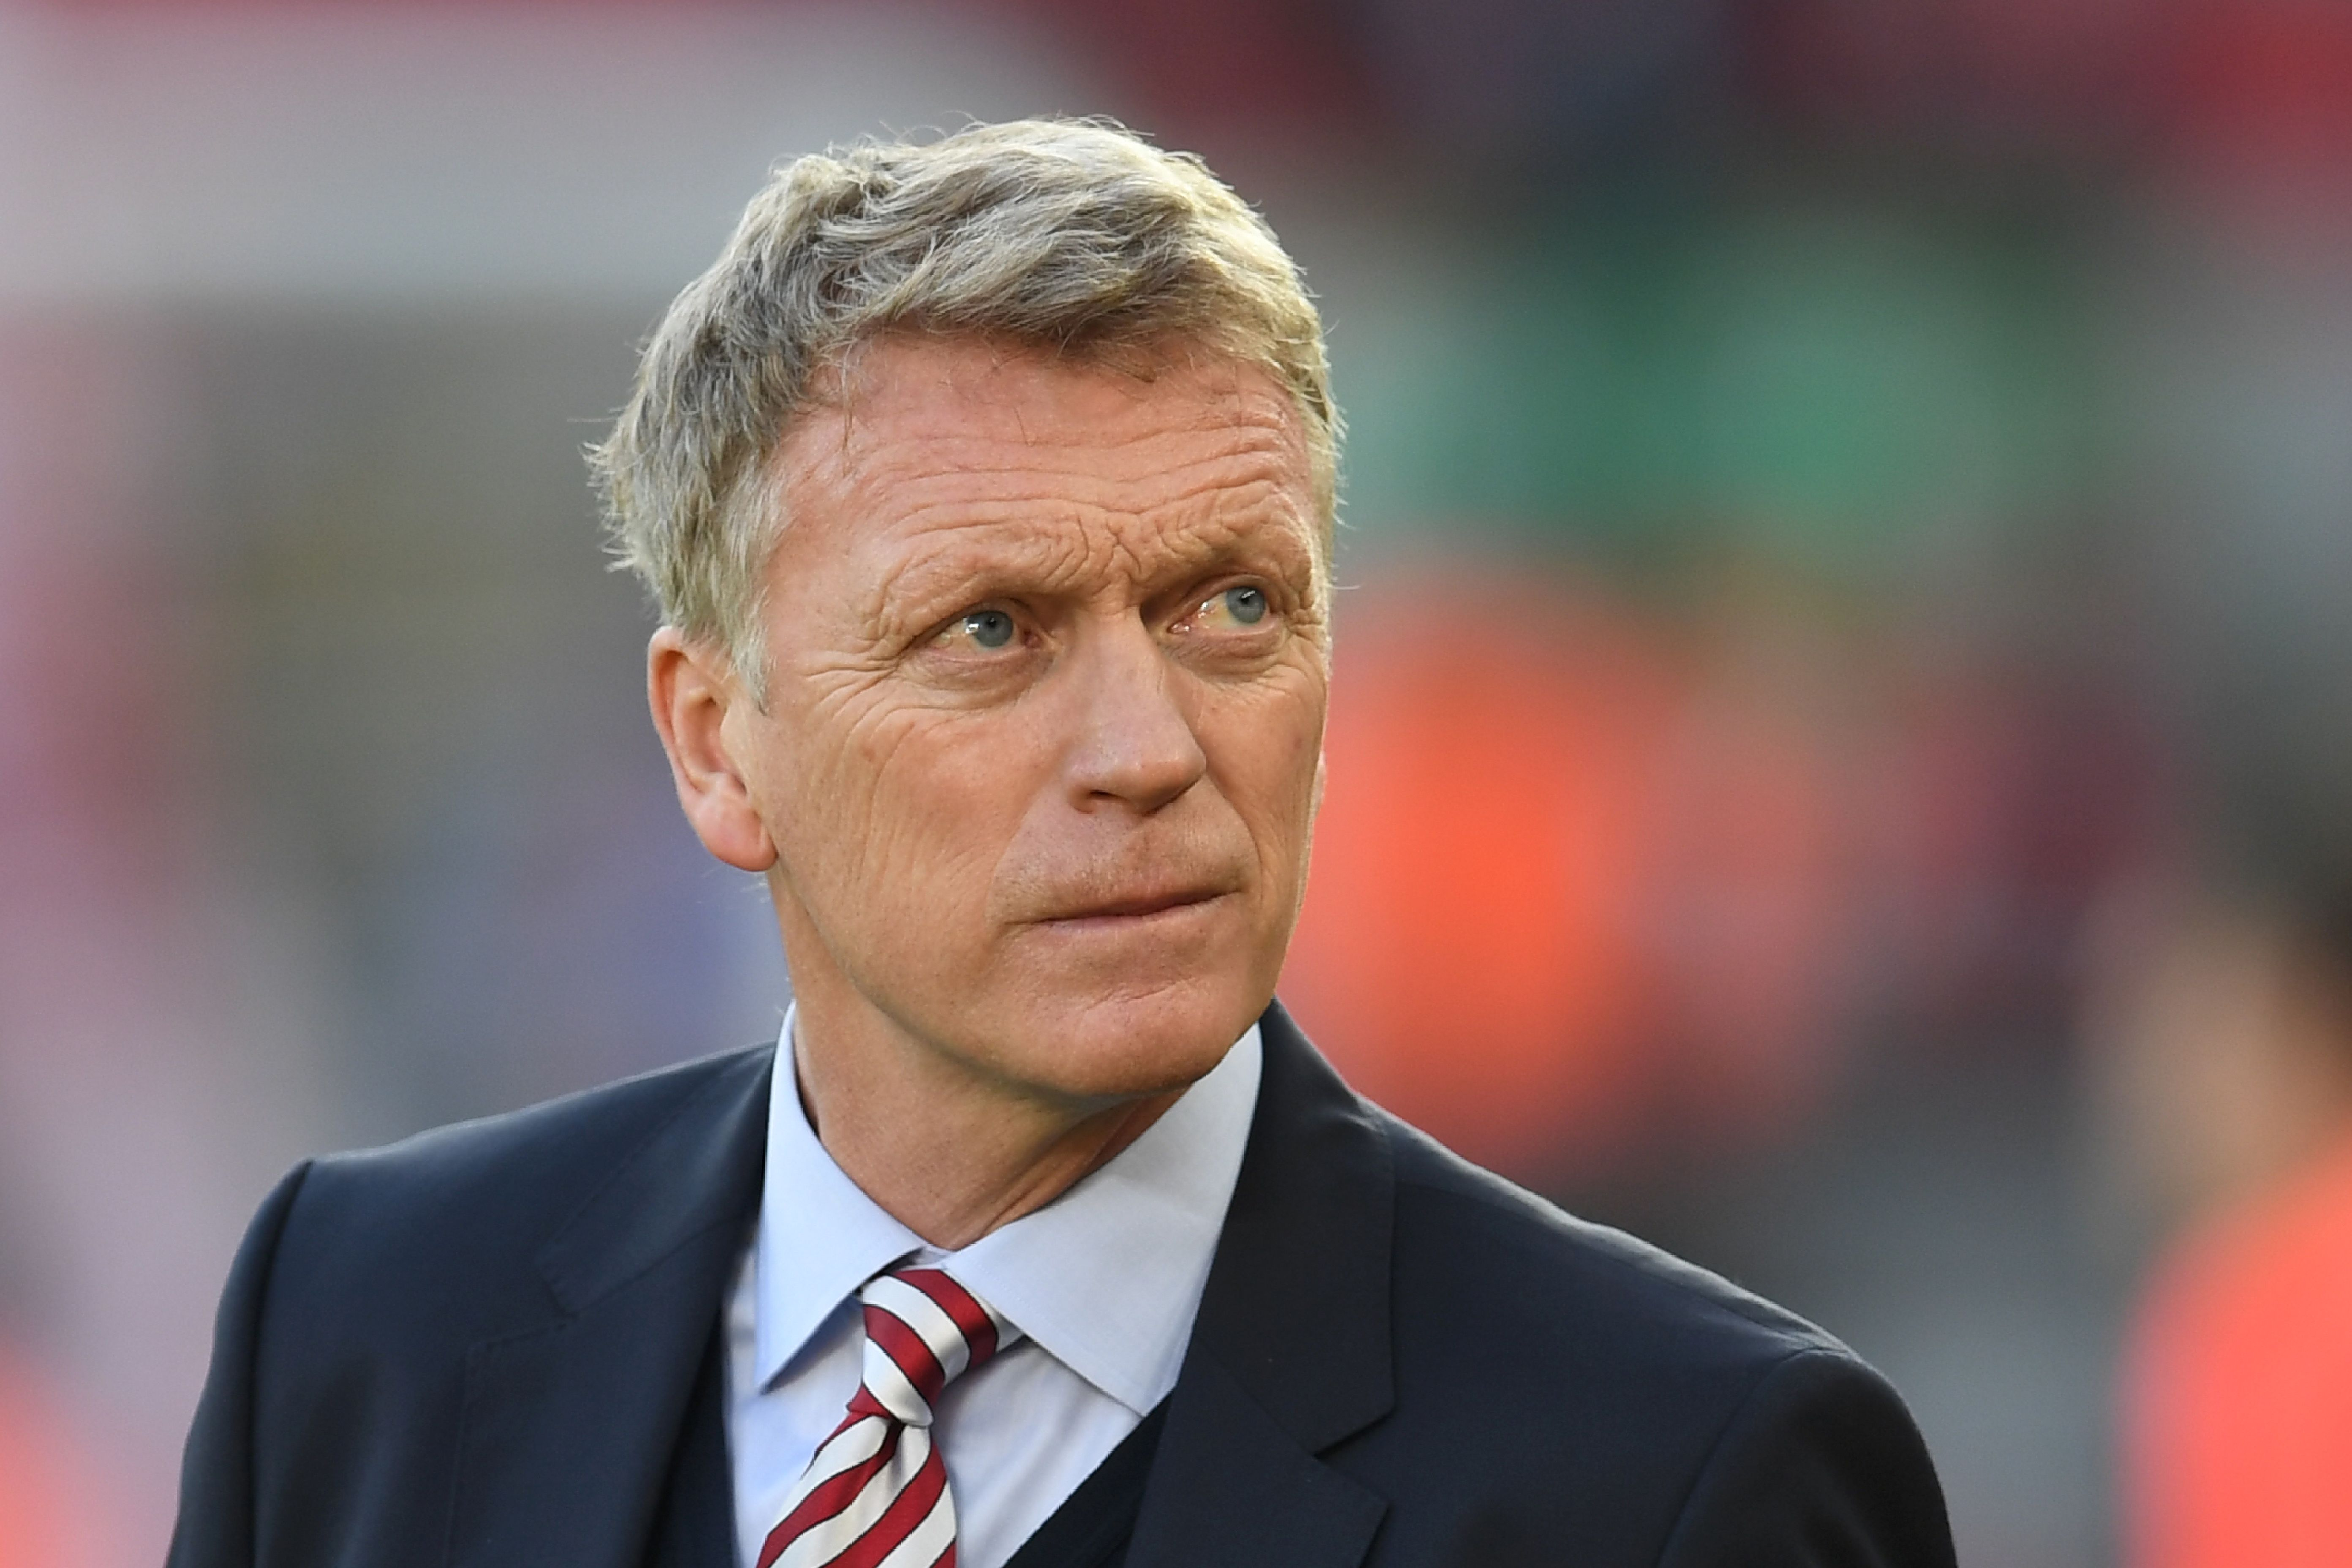 Manchester United promised David Moyes transfers of Cristiano Ronaldo, Gareth Bale, Cesc Fabregas and Toni Kroos